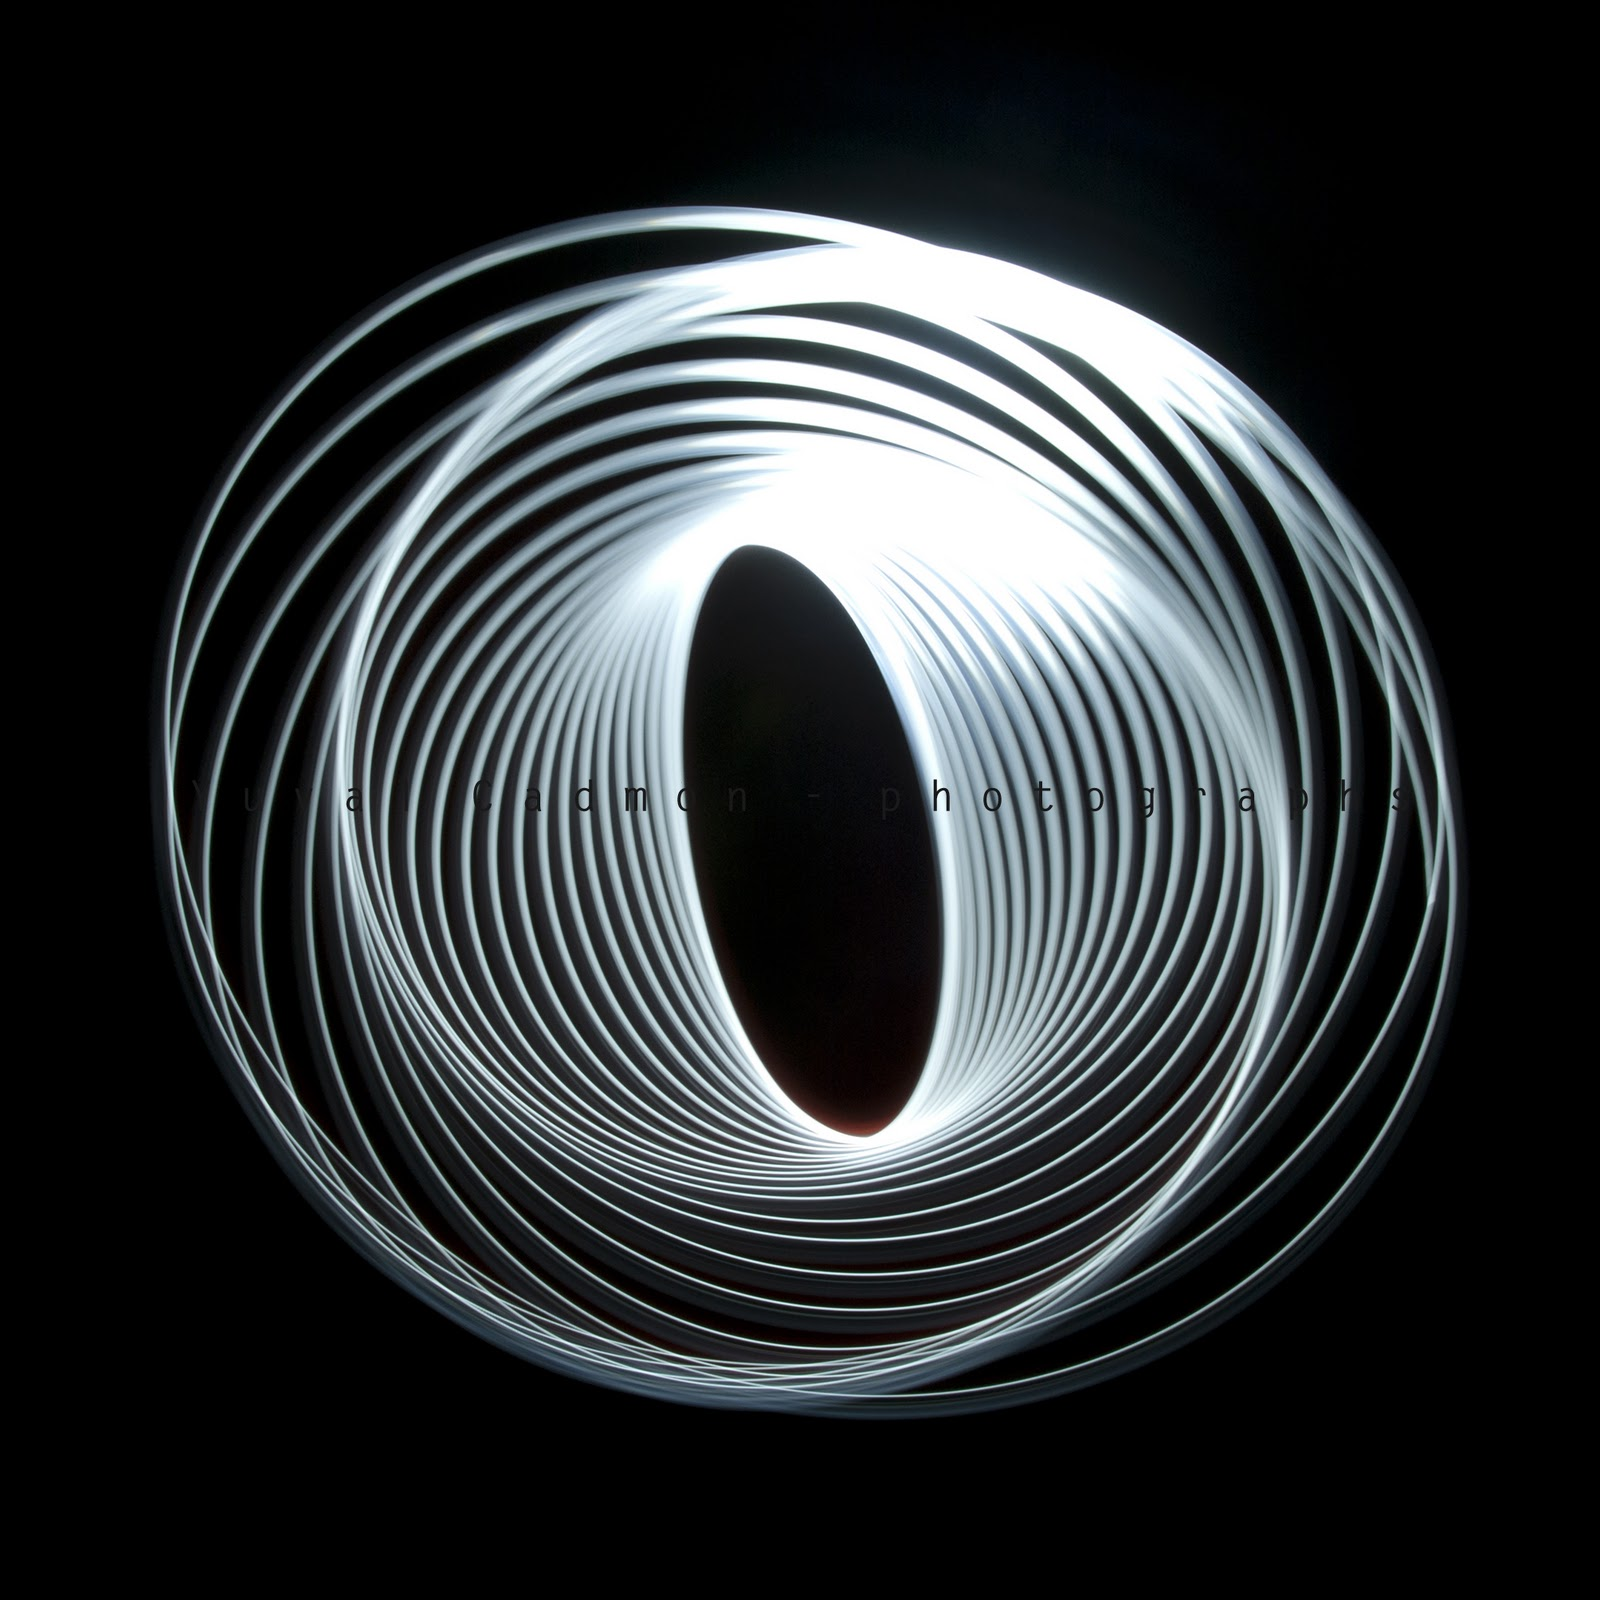 Traces of Light - Yuval Cadmon photography: Spiral traces ...